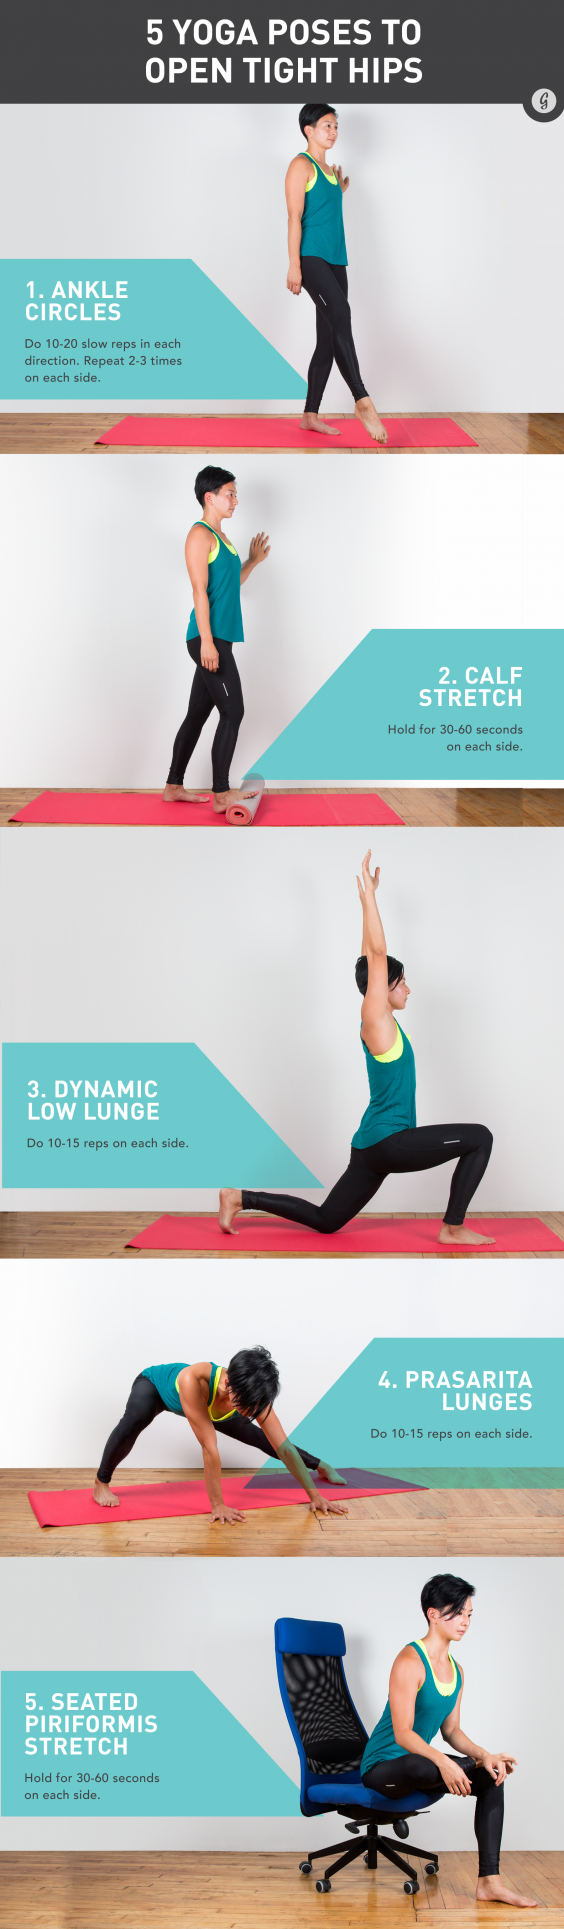 5 Easy Yoga Moves to Open Tight Hips | Greatist